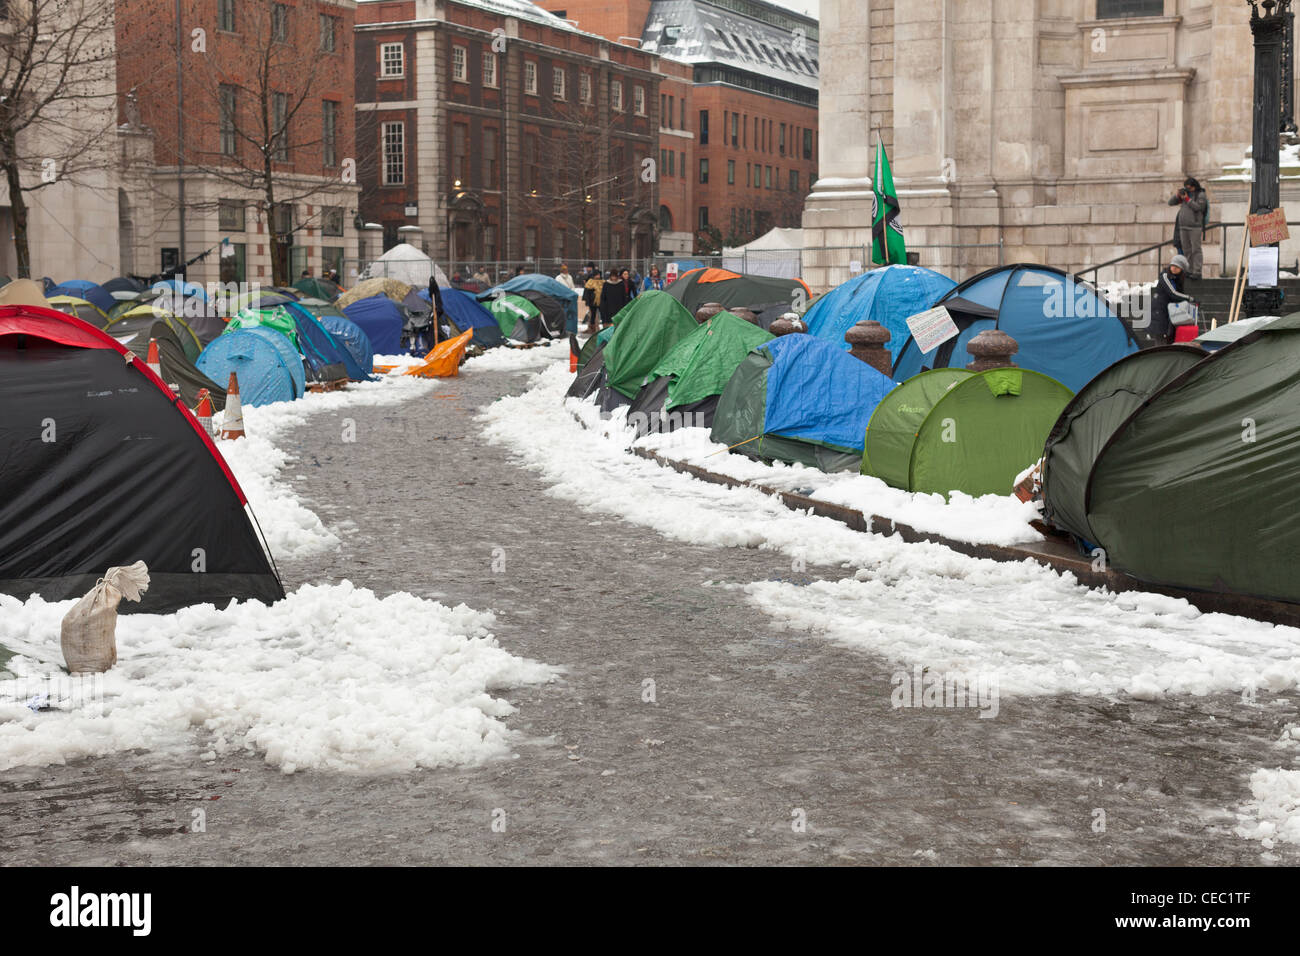 Anti-capitalist protesters camp  in London, England - Stock Image